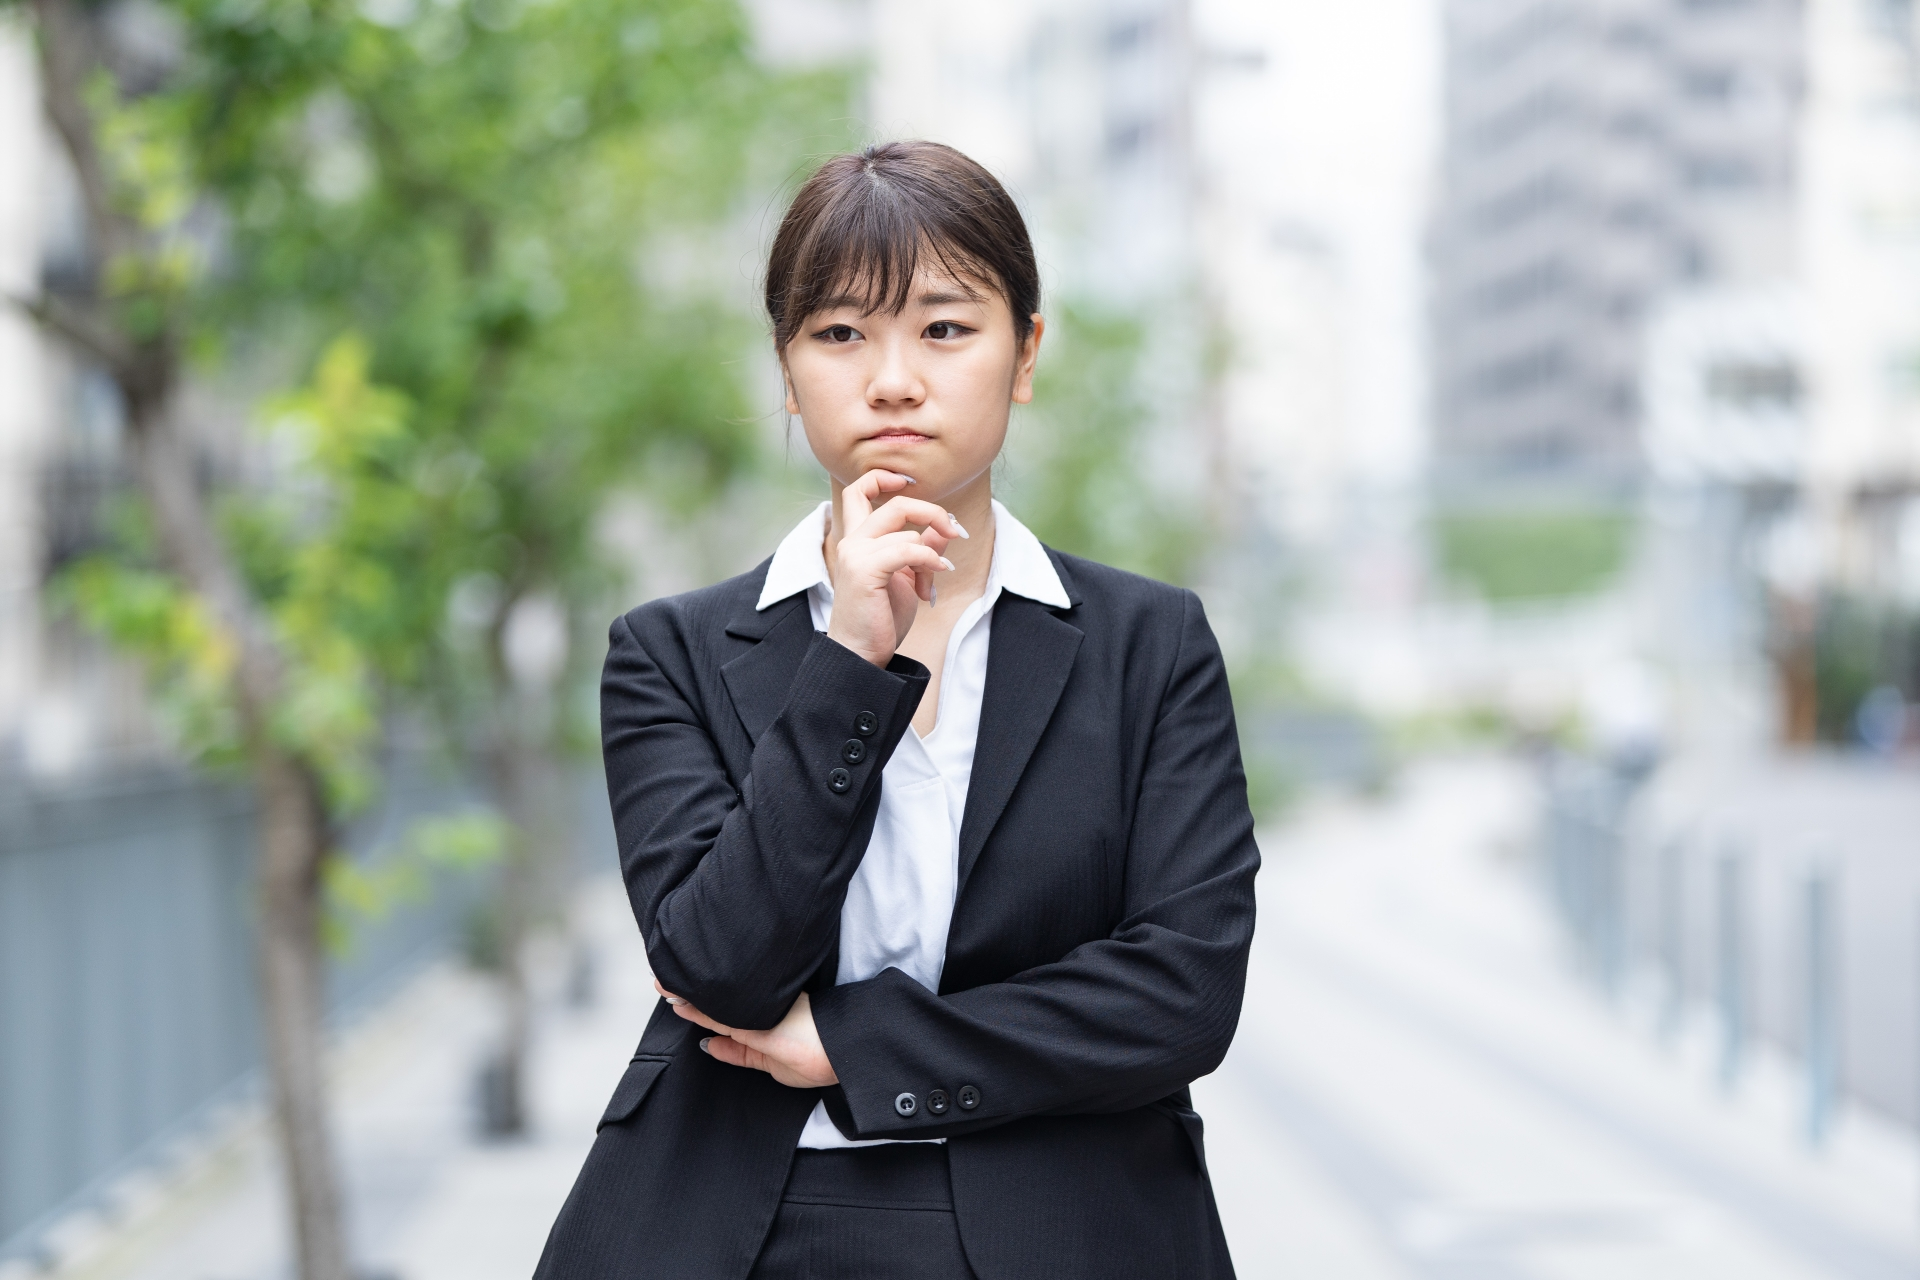 Read more about the article 「焦りすぎていませんか?貴女の悩みに寄り添います」